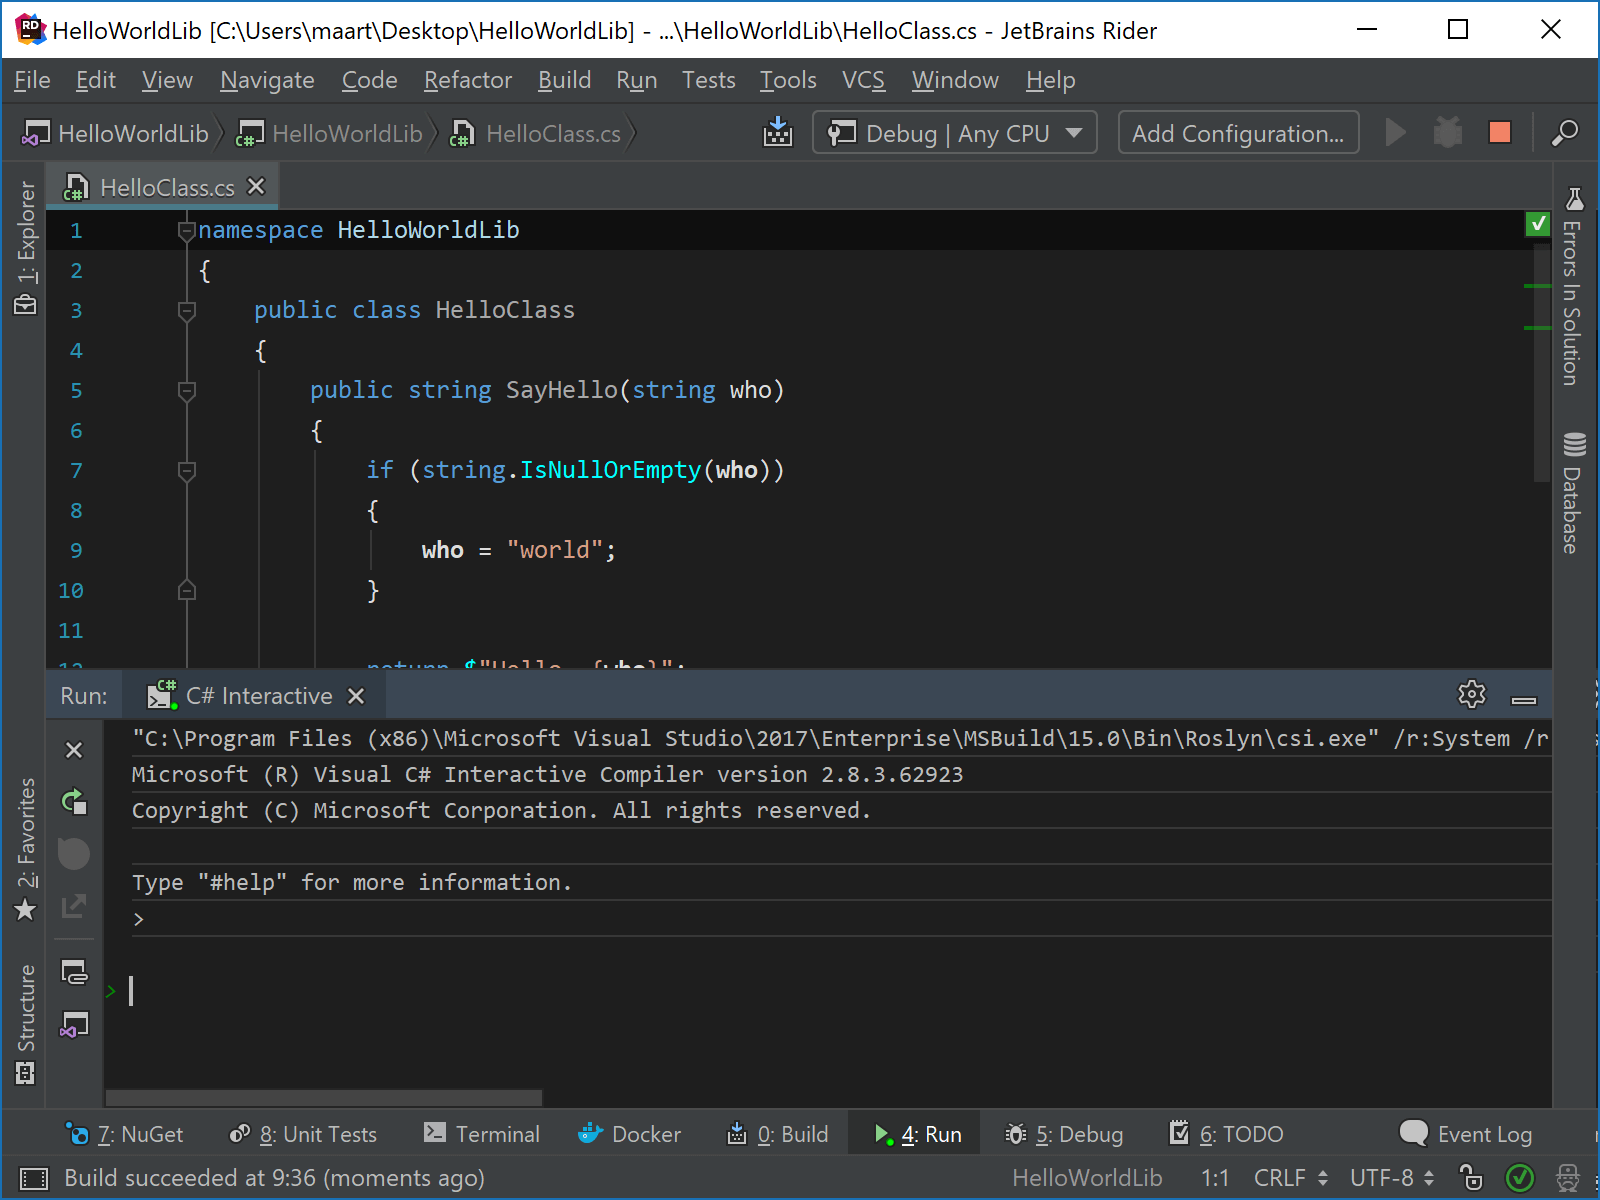 Debugging code from C# Interactive